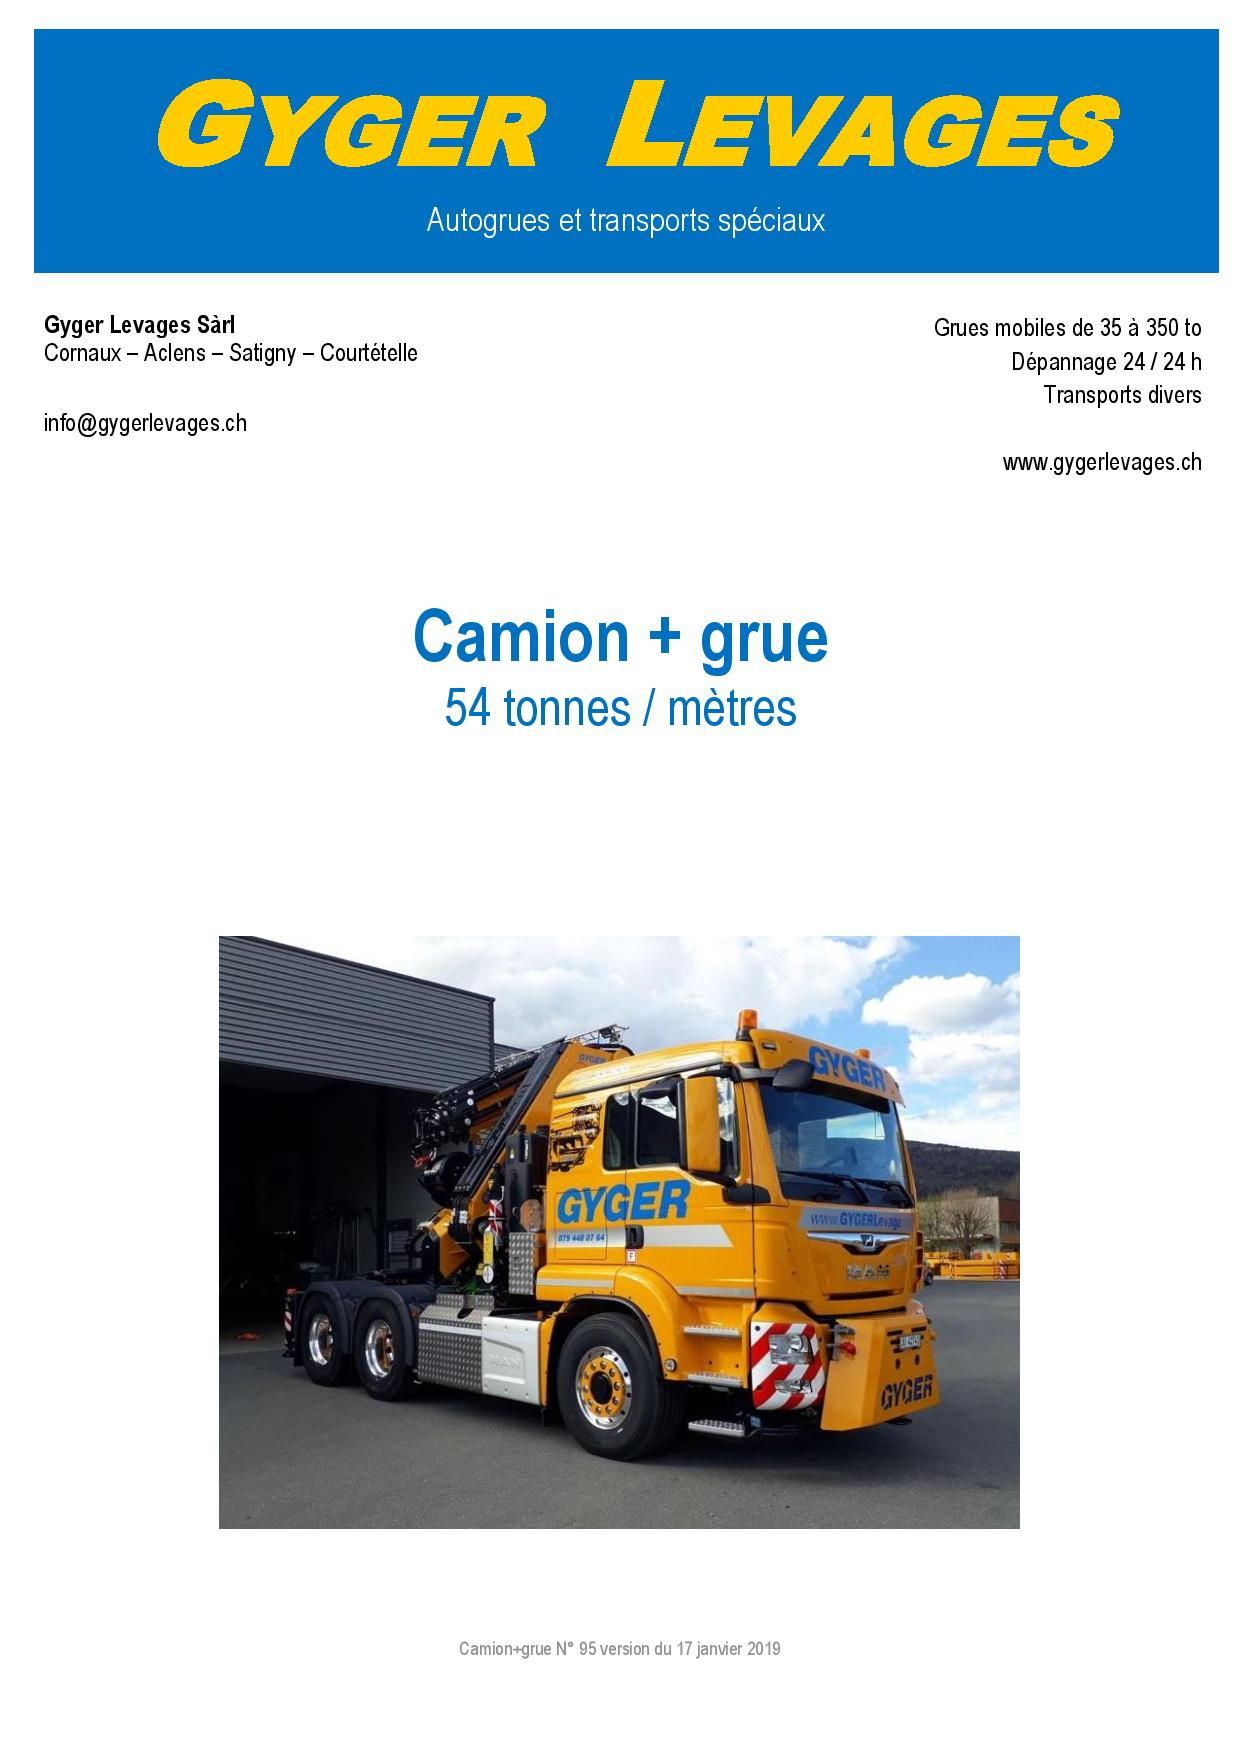 Camion grue 54tm page 1 page 001